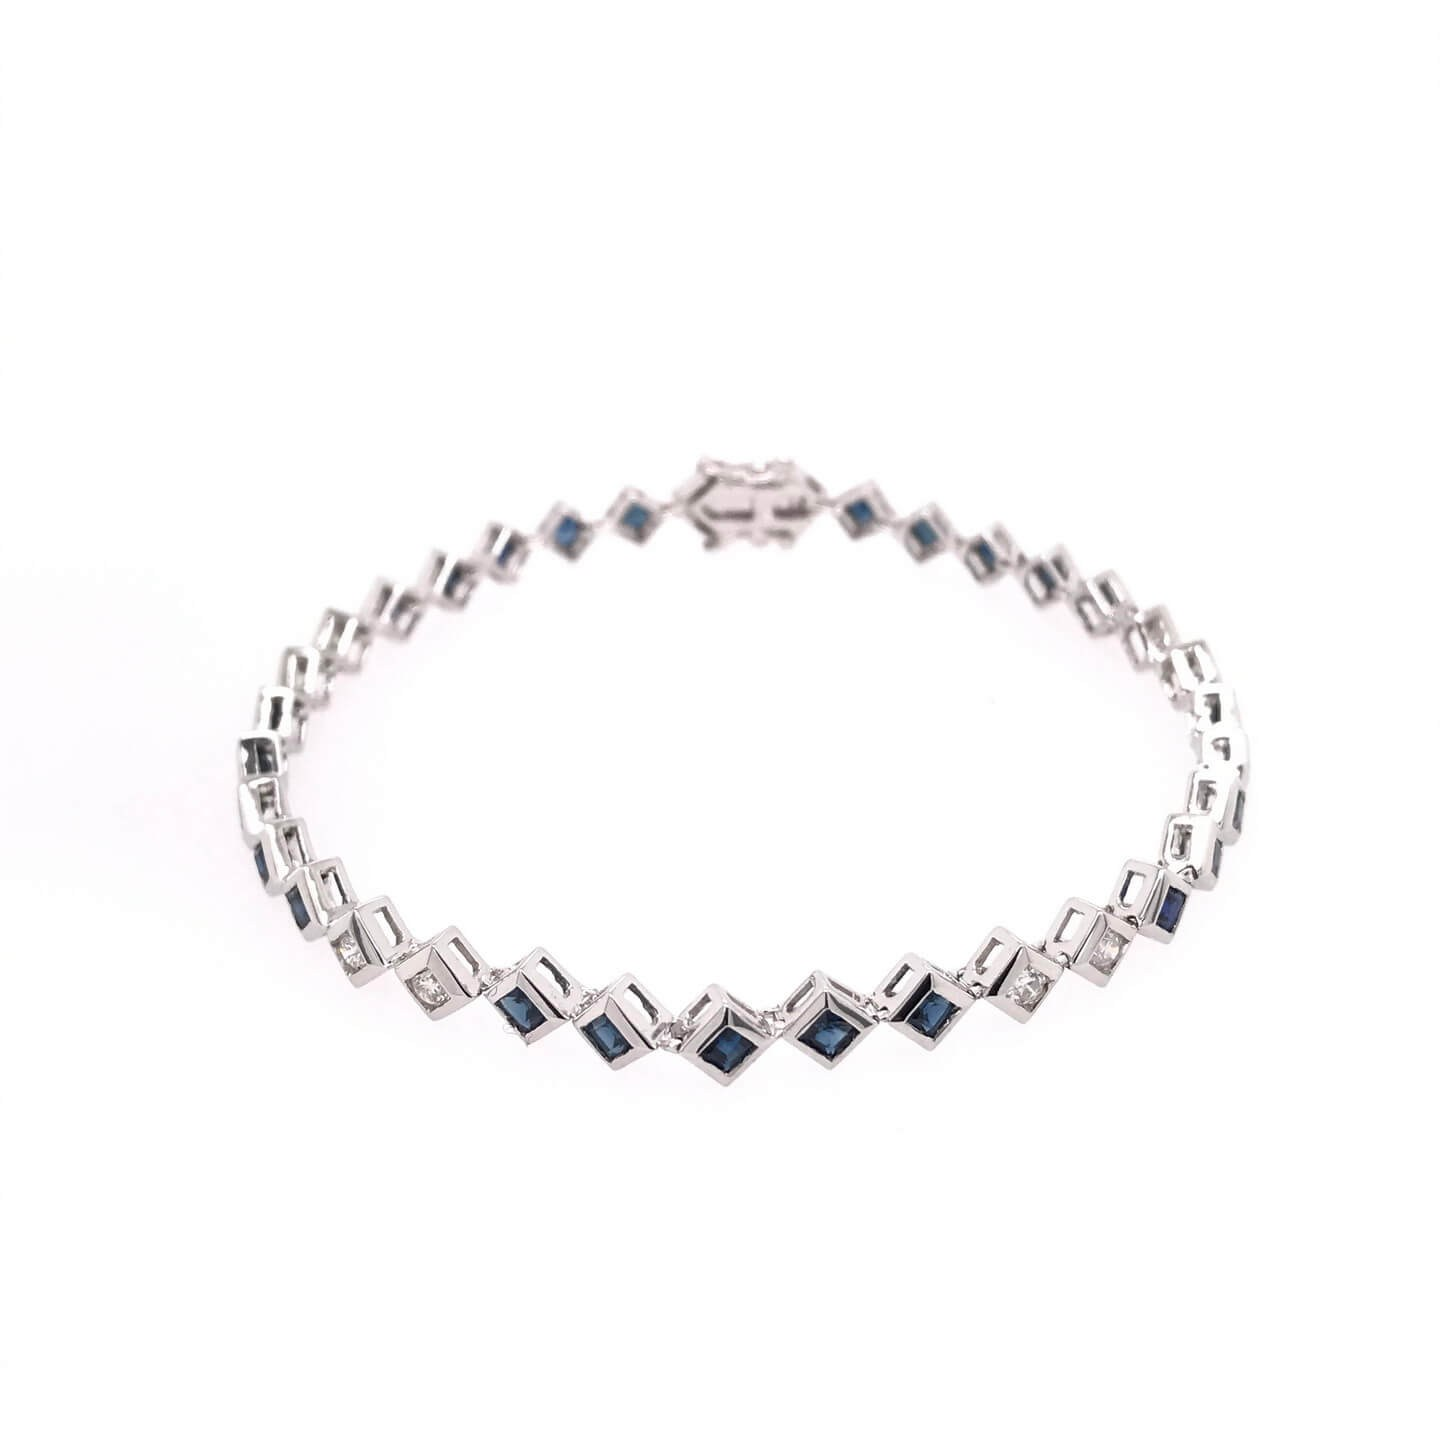 White gold K18 bracelet with diamonds 0.40ct  and sapphires 2.00ct.